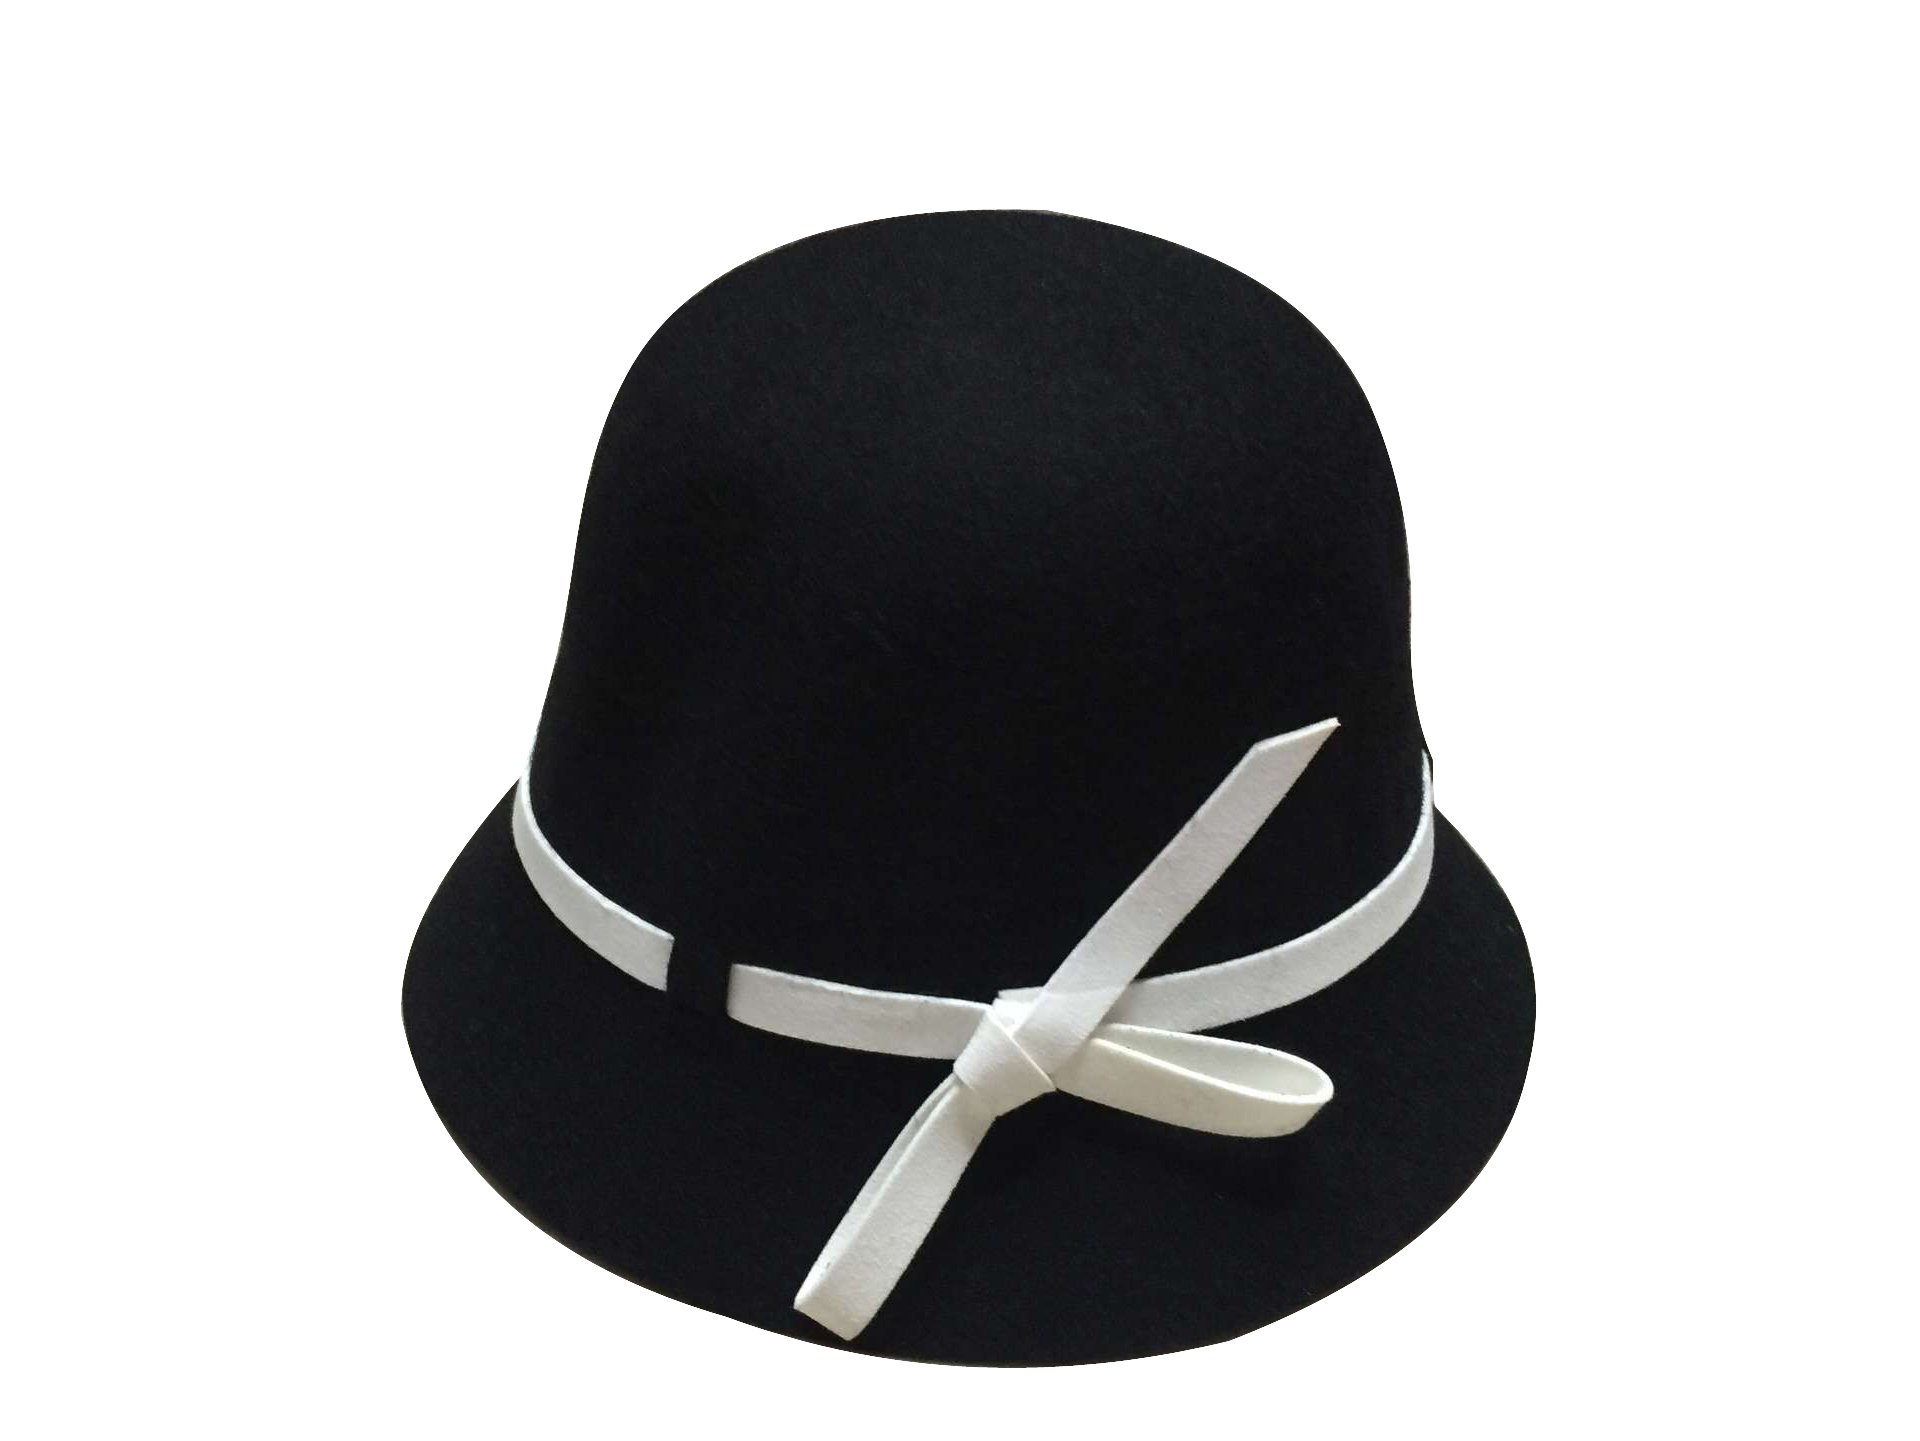 ACVIP Little Grils Solid Color Cap Cloche Bowler Bucket Dress Hat with Side Bow (Black)